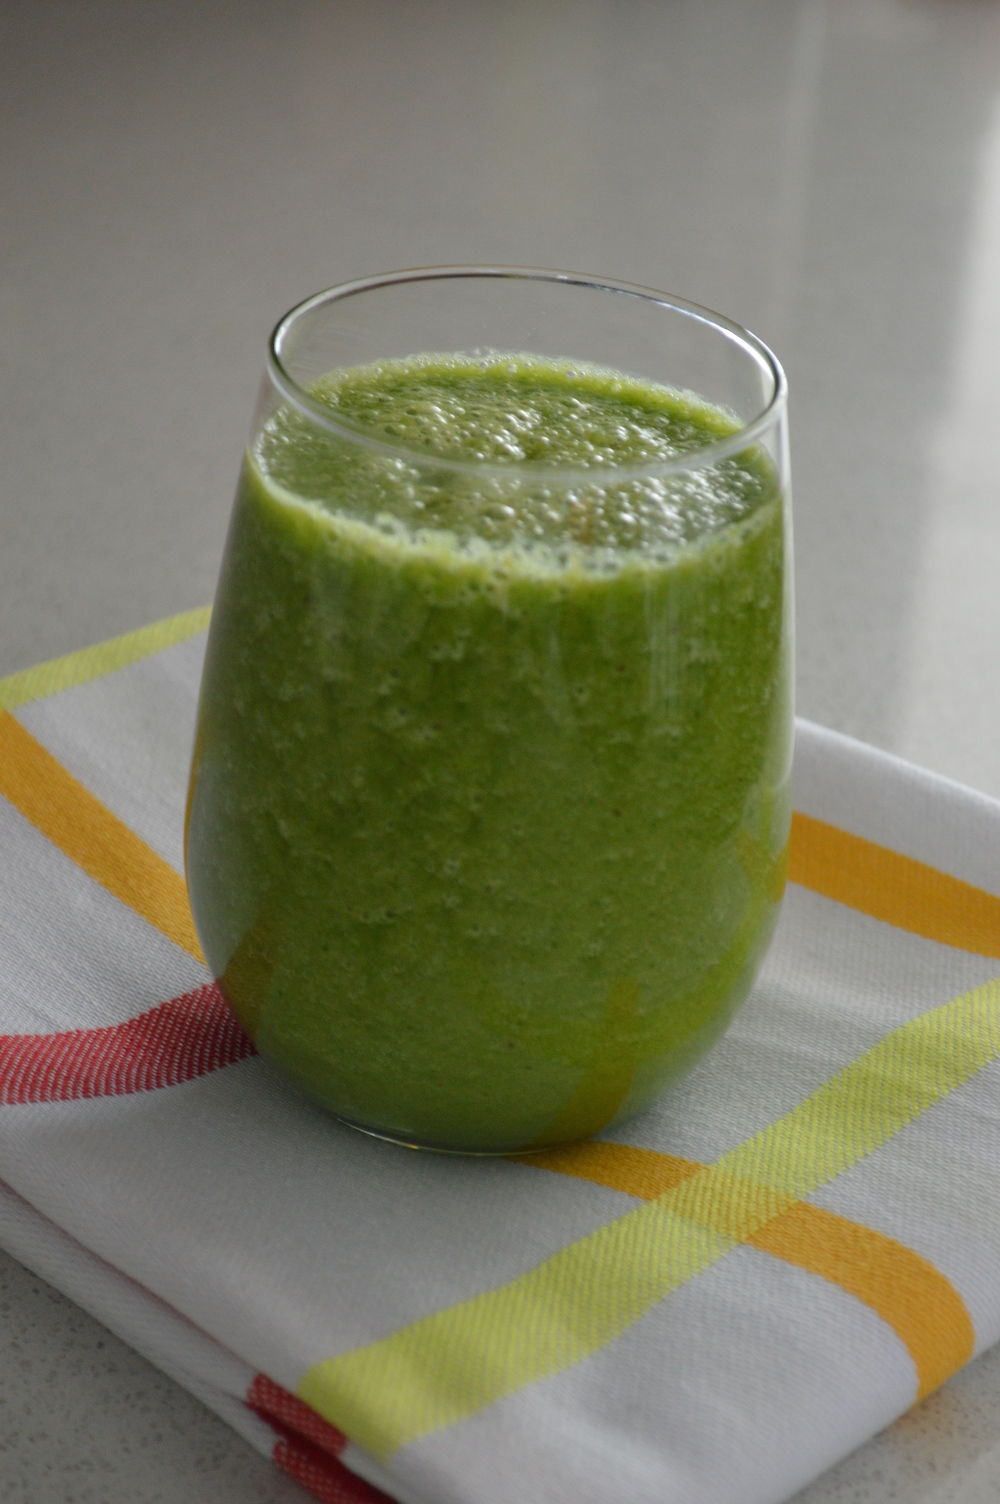 LaurenSchwaiger-Blog-Cucumber-Banana-Ginger-GreenSmoothie.jpg